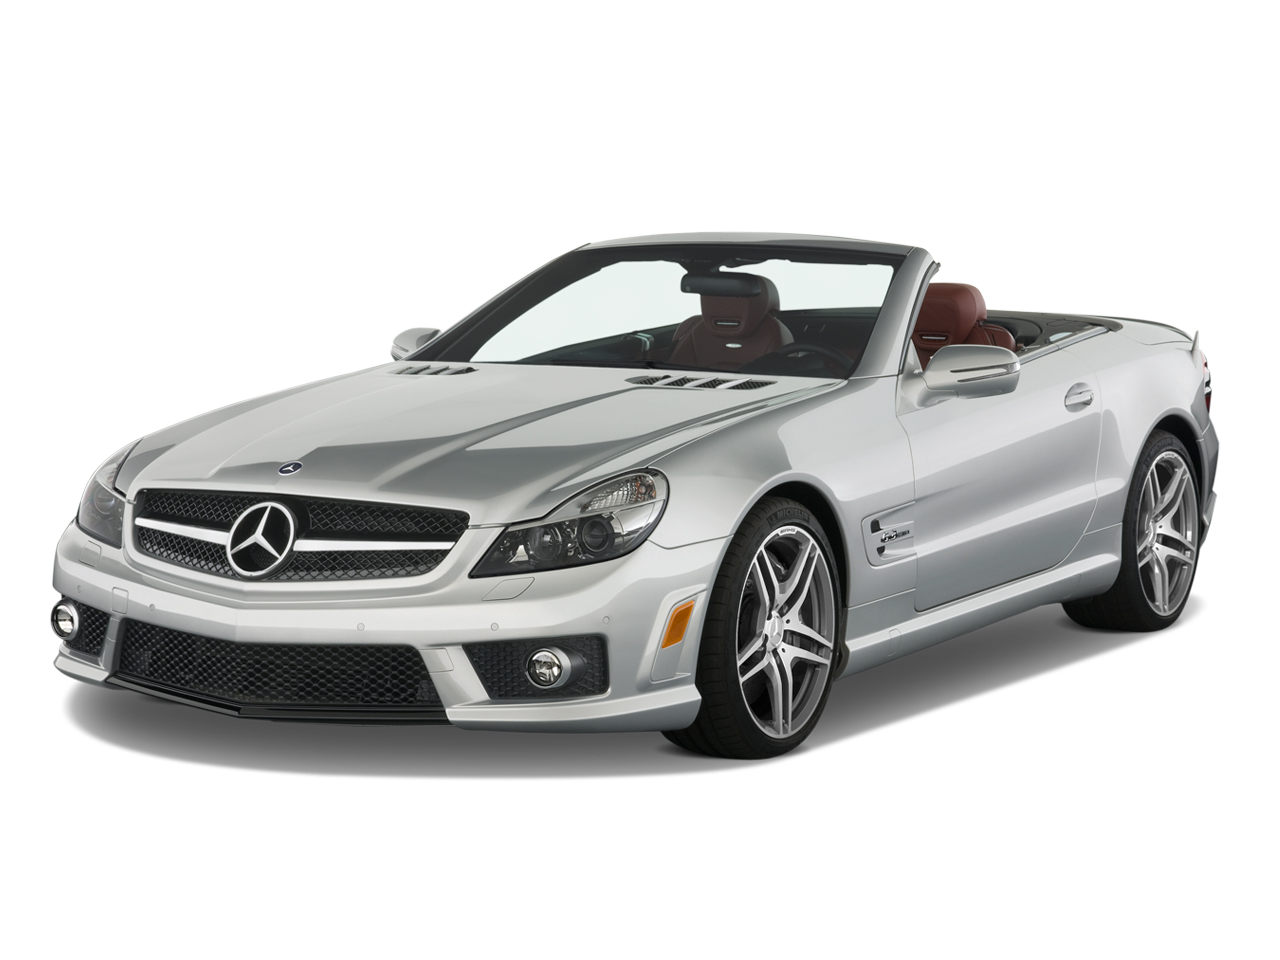 Auto show log 2011 mercedes benz sl class for 2011 mercedes benz sl class